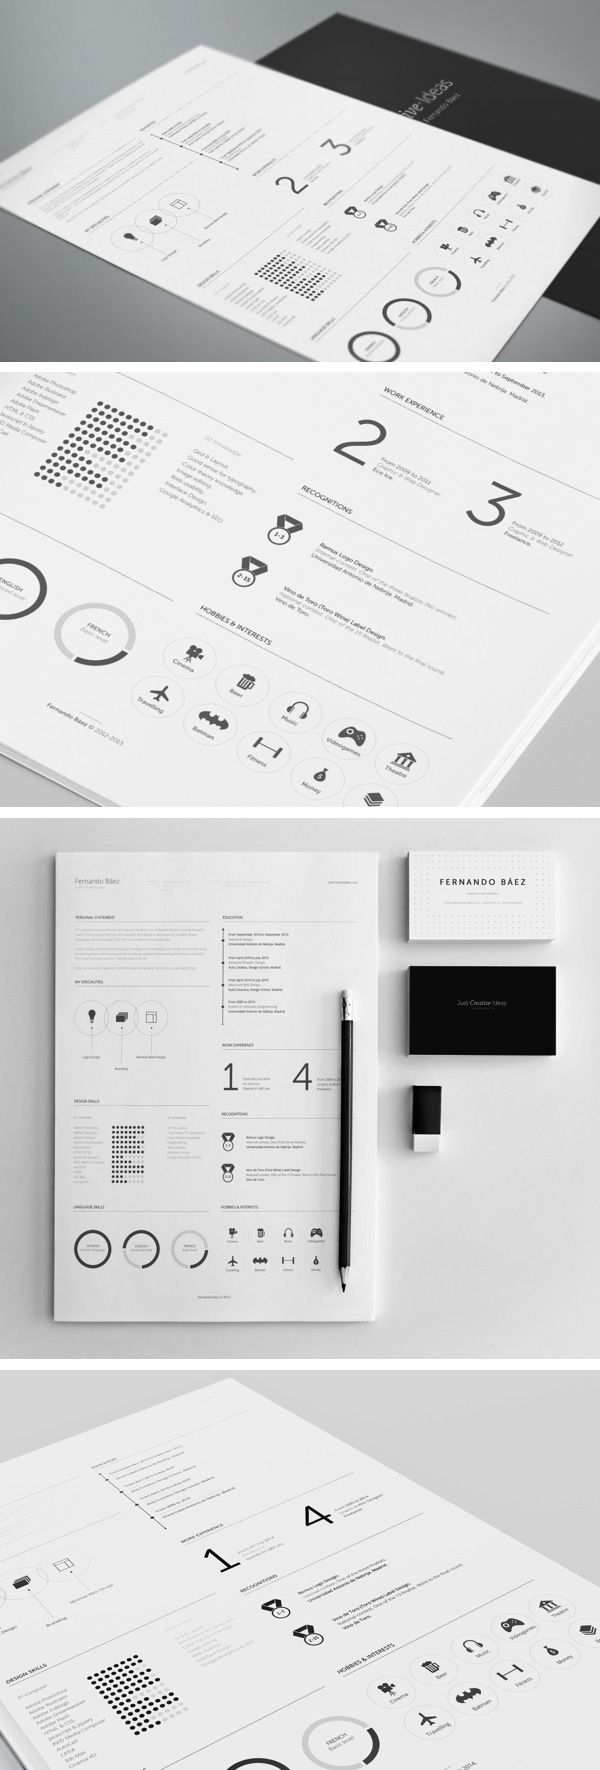 & Developer Resume Template A free vector resume template that is very fit for designer and developers and has a business card template with it. Download Here - posted under Freebies tagged with: AI, Business Card, CV, Free, Graphic Design, Print, Resource, Resume, Template, Vector by Fribly EditorialA free vector resume template that is ve...